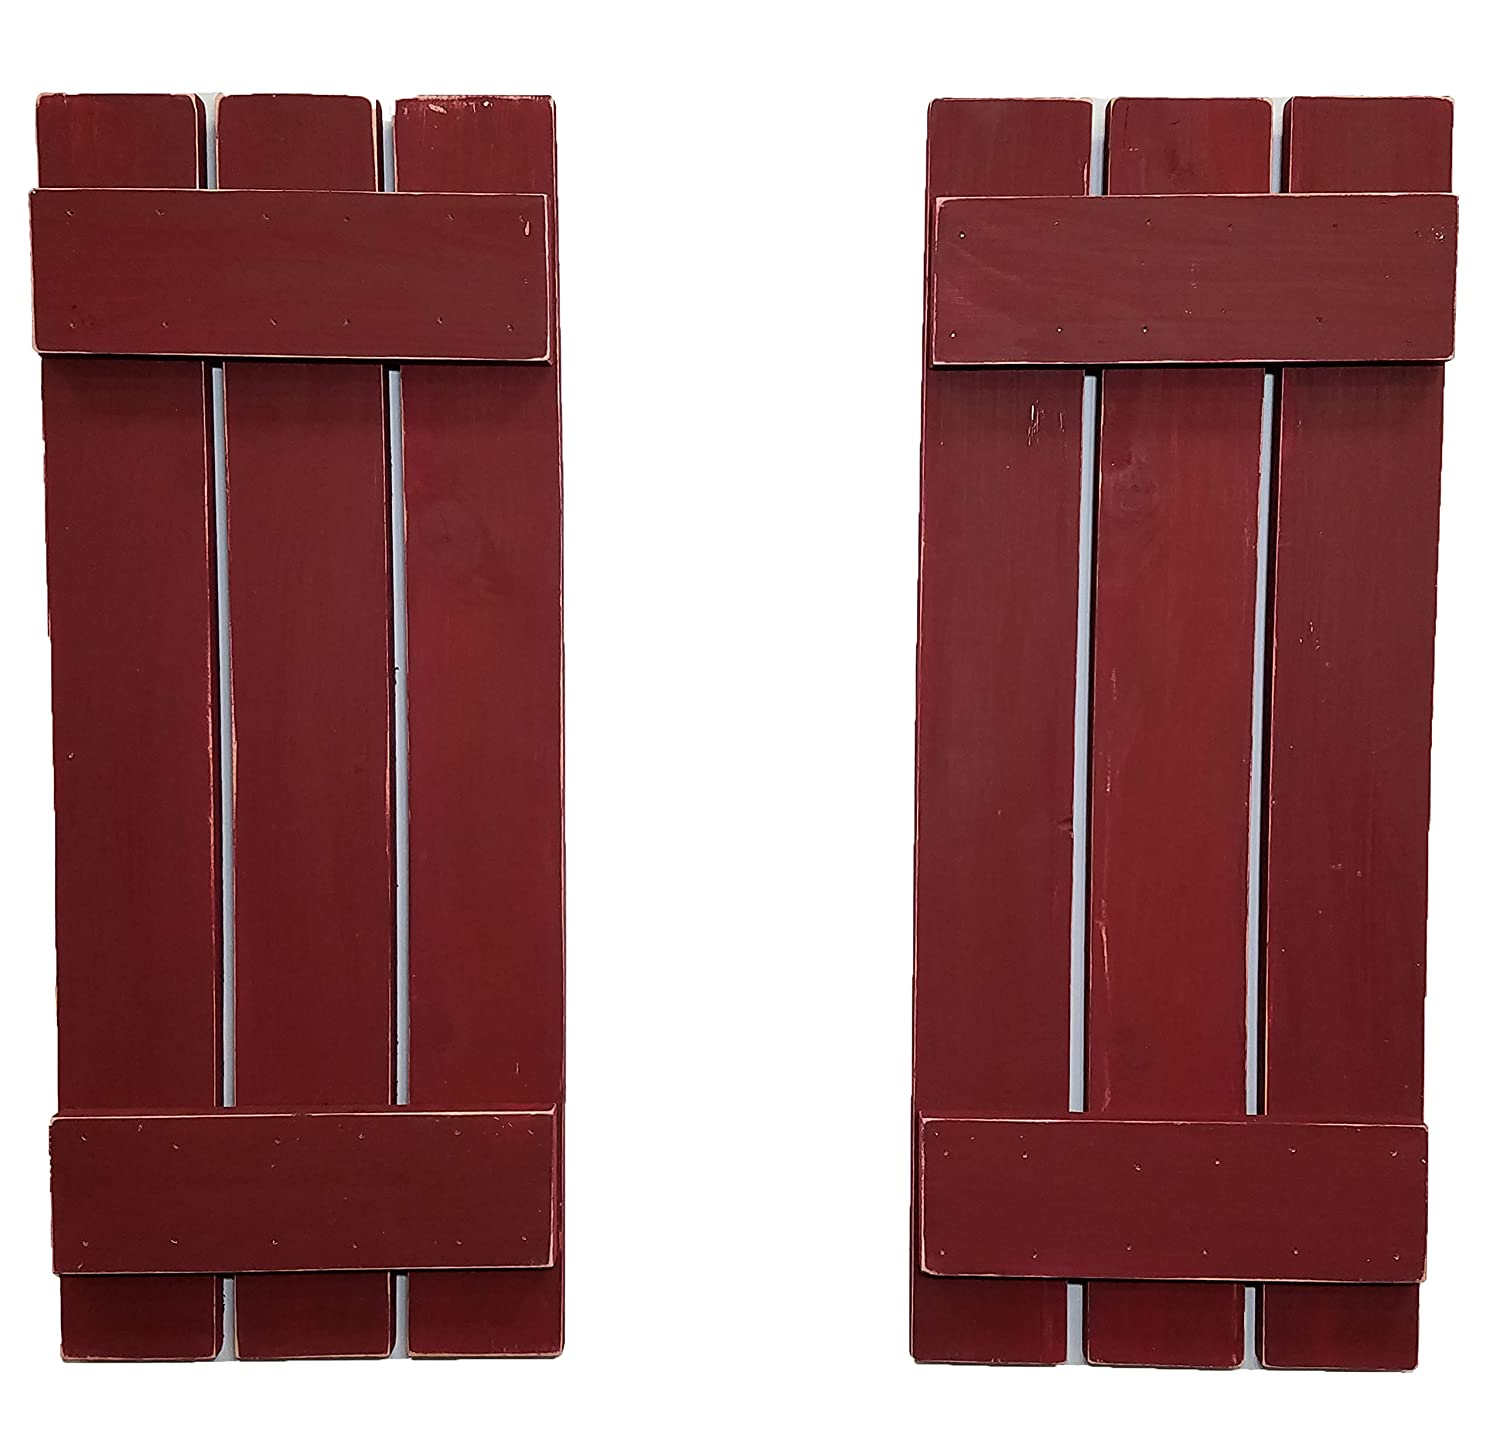 Countryside Rustic Pair of Decorative Board and Batten Shutters by Renewed Decor